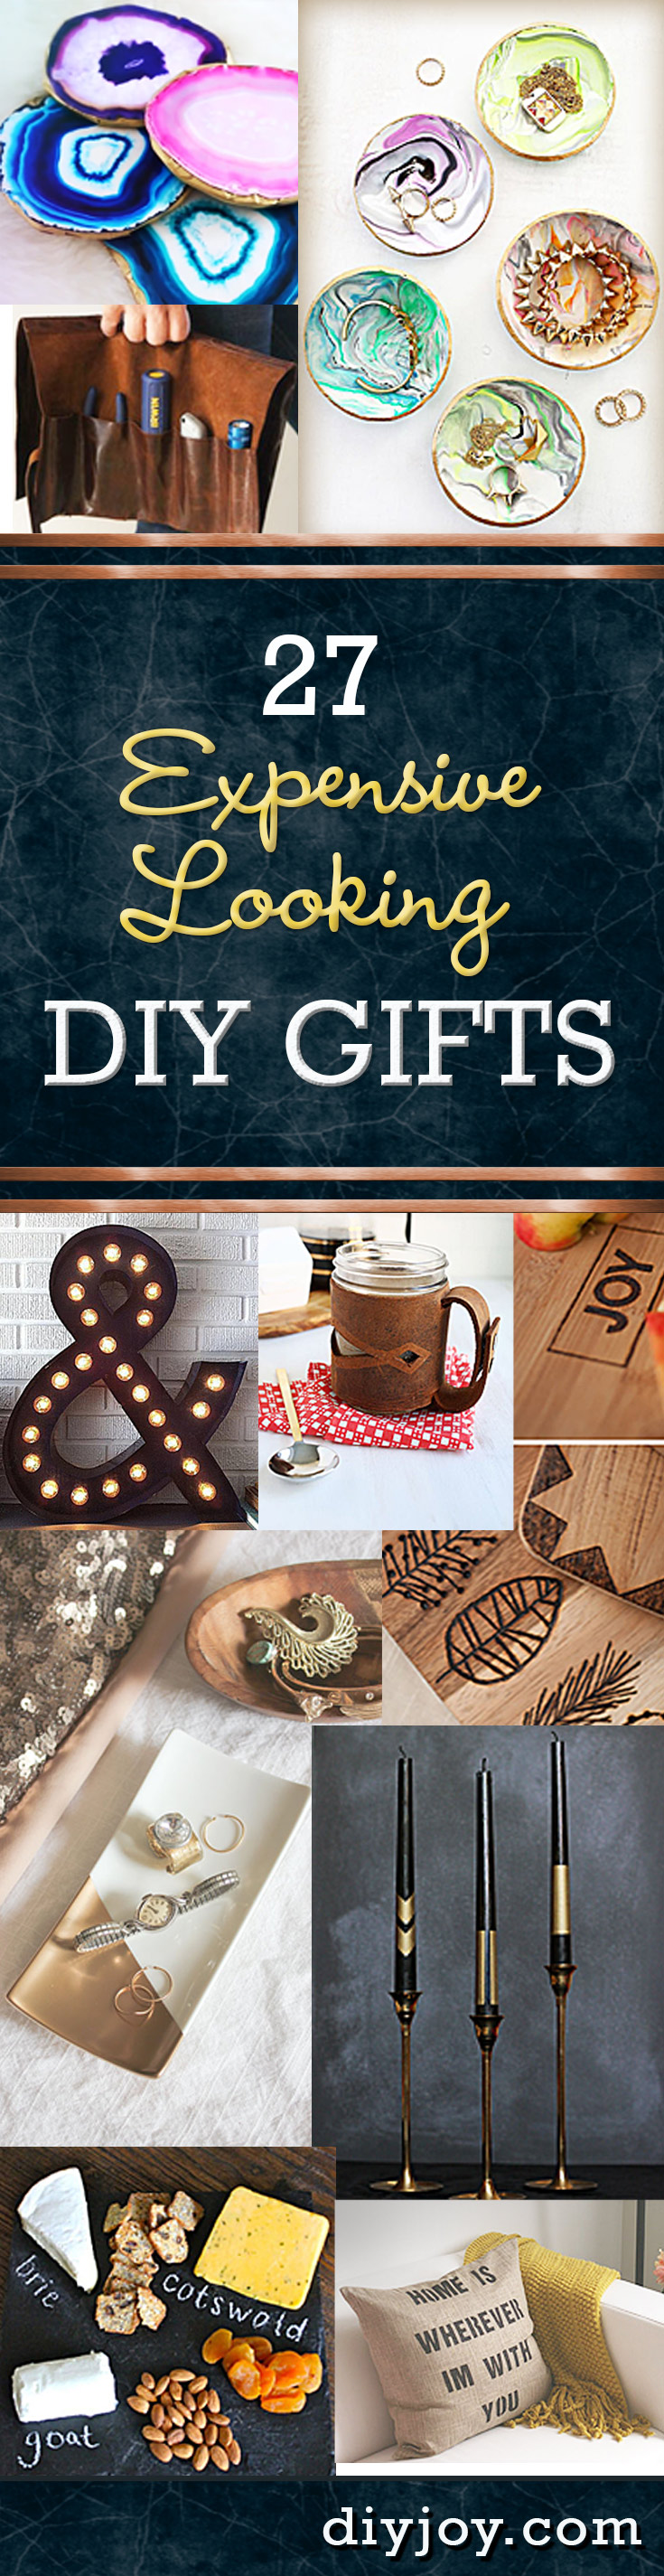 Inexpensive Diy Gifts To Make For Christmas Birthdays